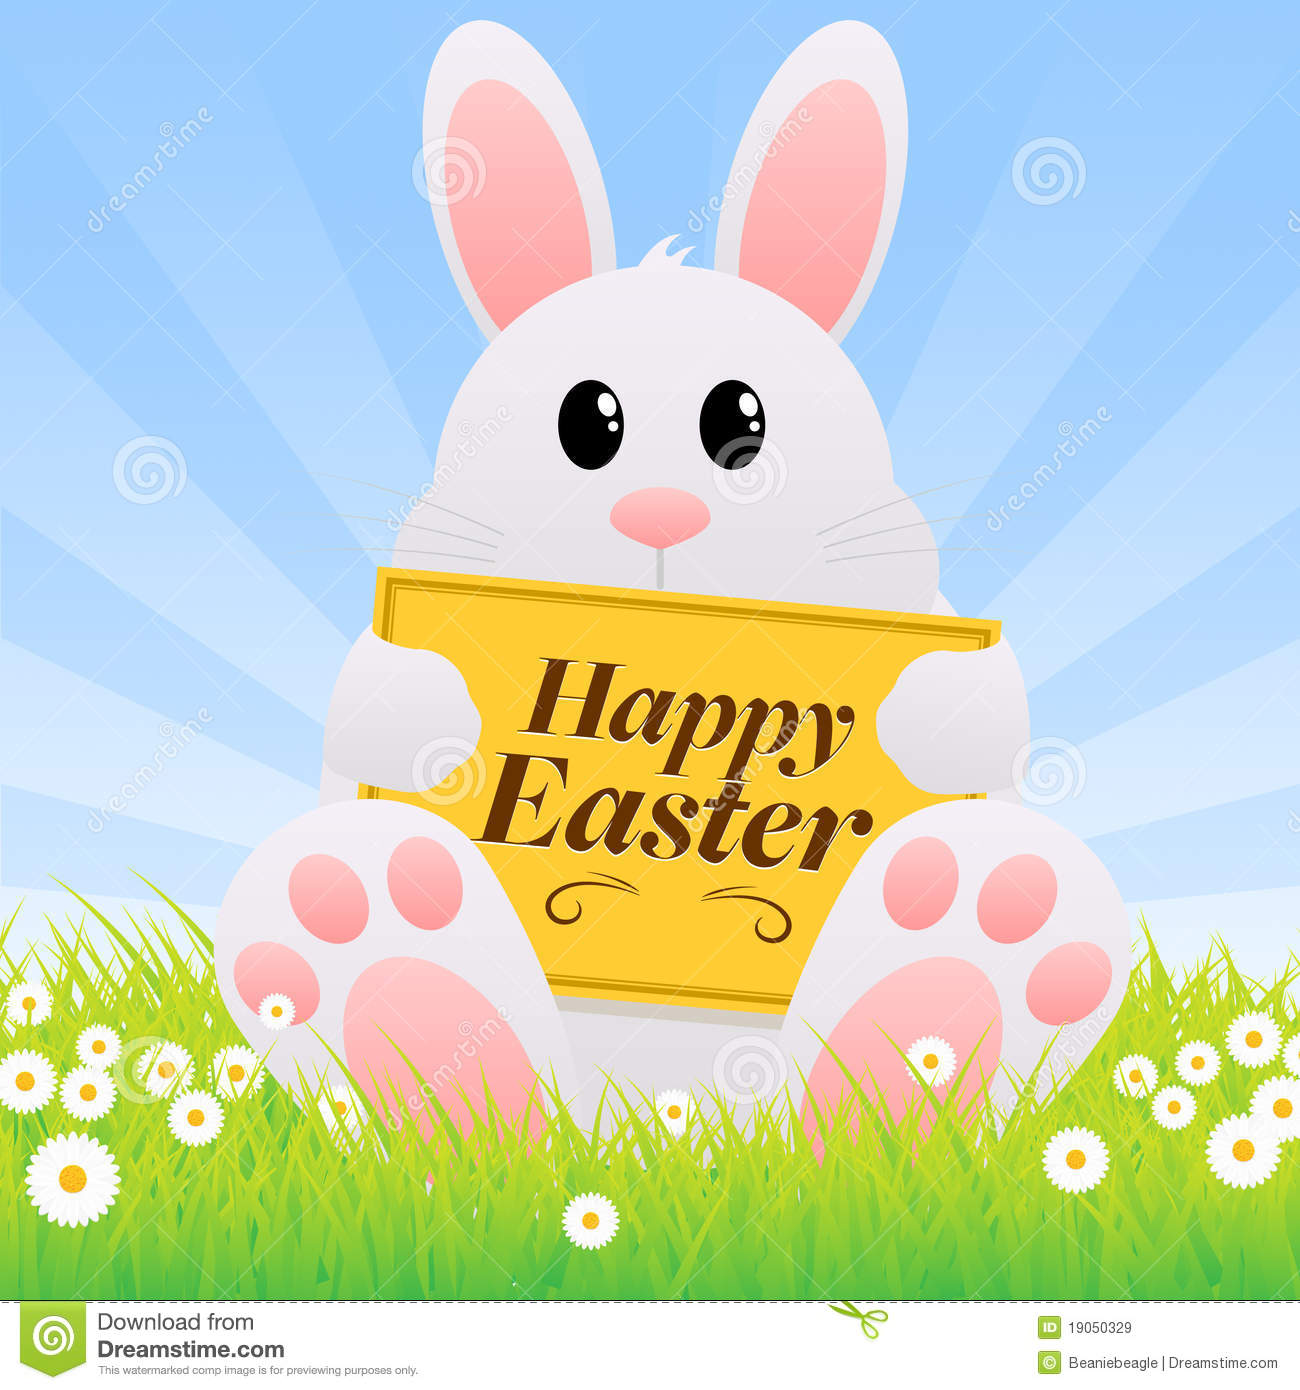 Easter bunny royalty free stock images image 19050329 for Free clipart no copyright